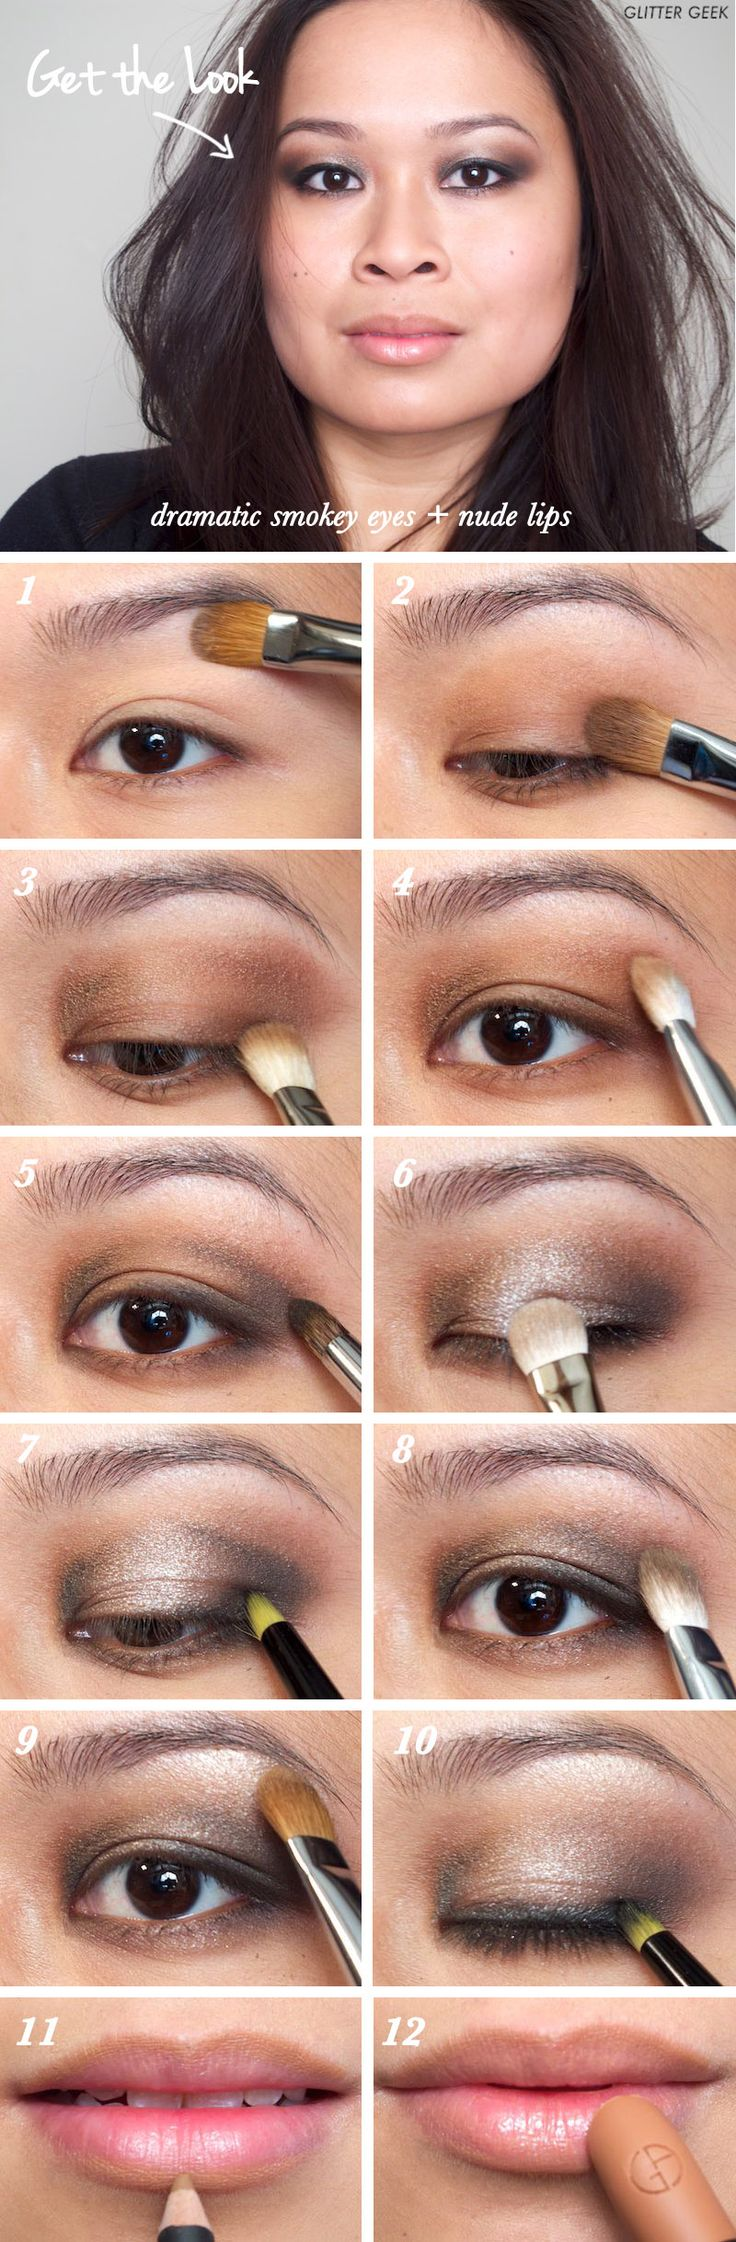 83 best eye makup tutorials images on pinterest eye makeup shu qi on harpers bazaar 2011 smokey eyes and nude lips makeup tutorial western style super bold clubbing makeup baditri Image collections